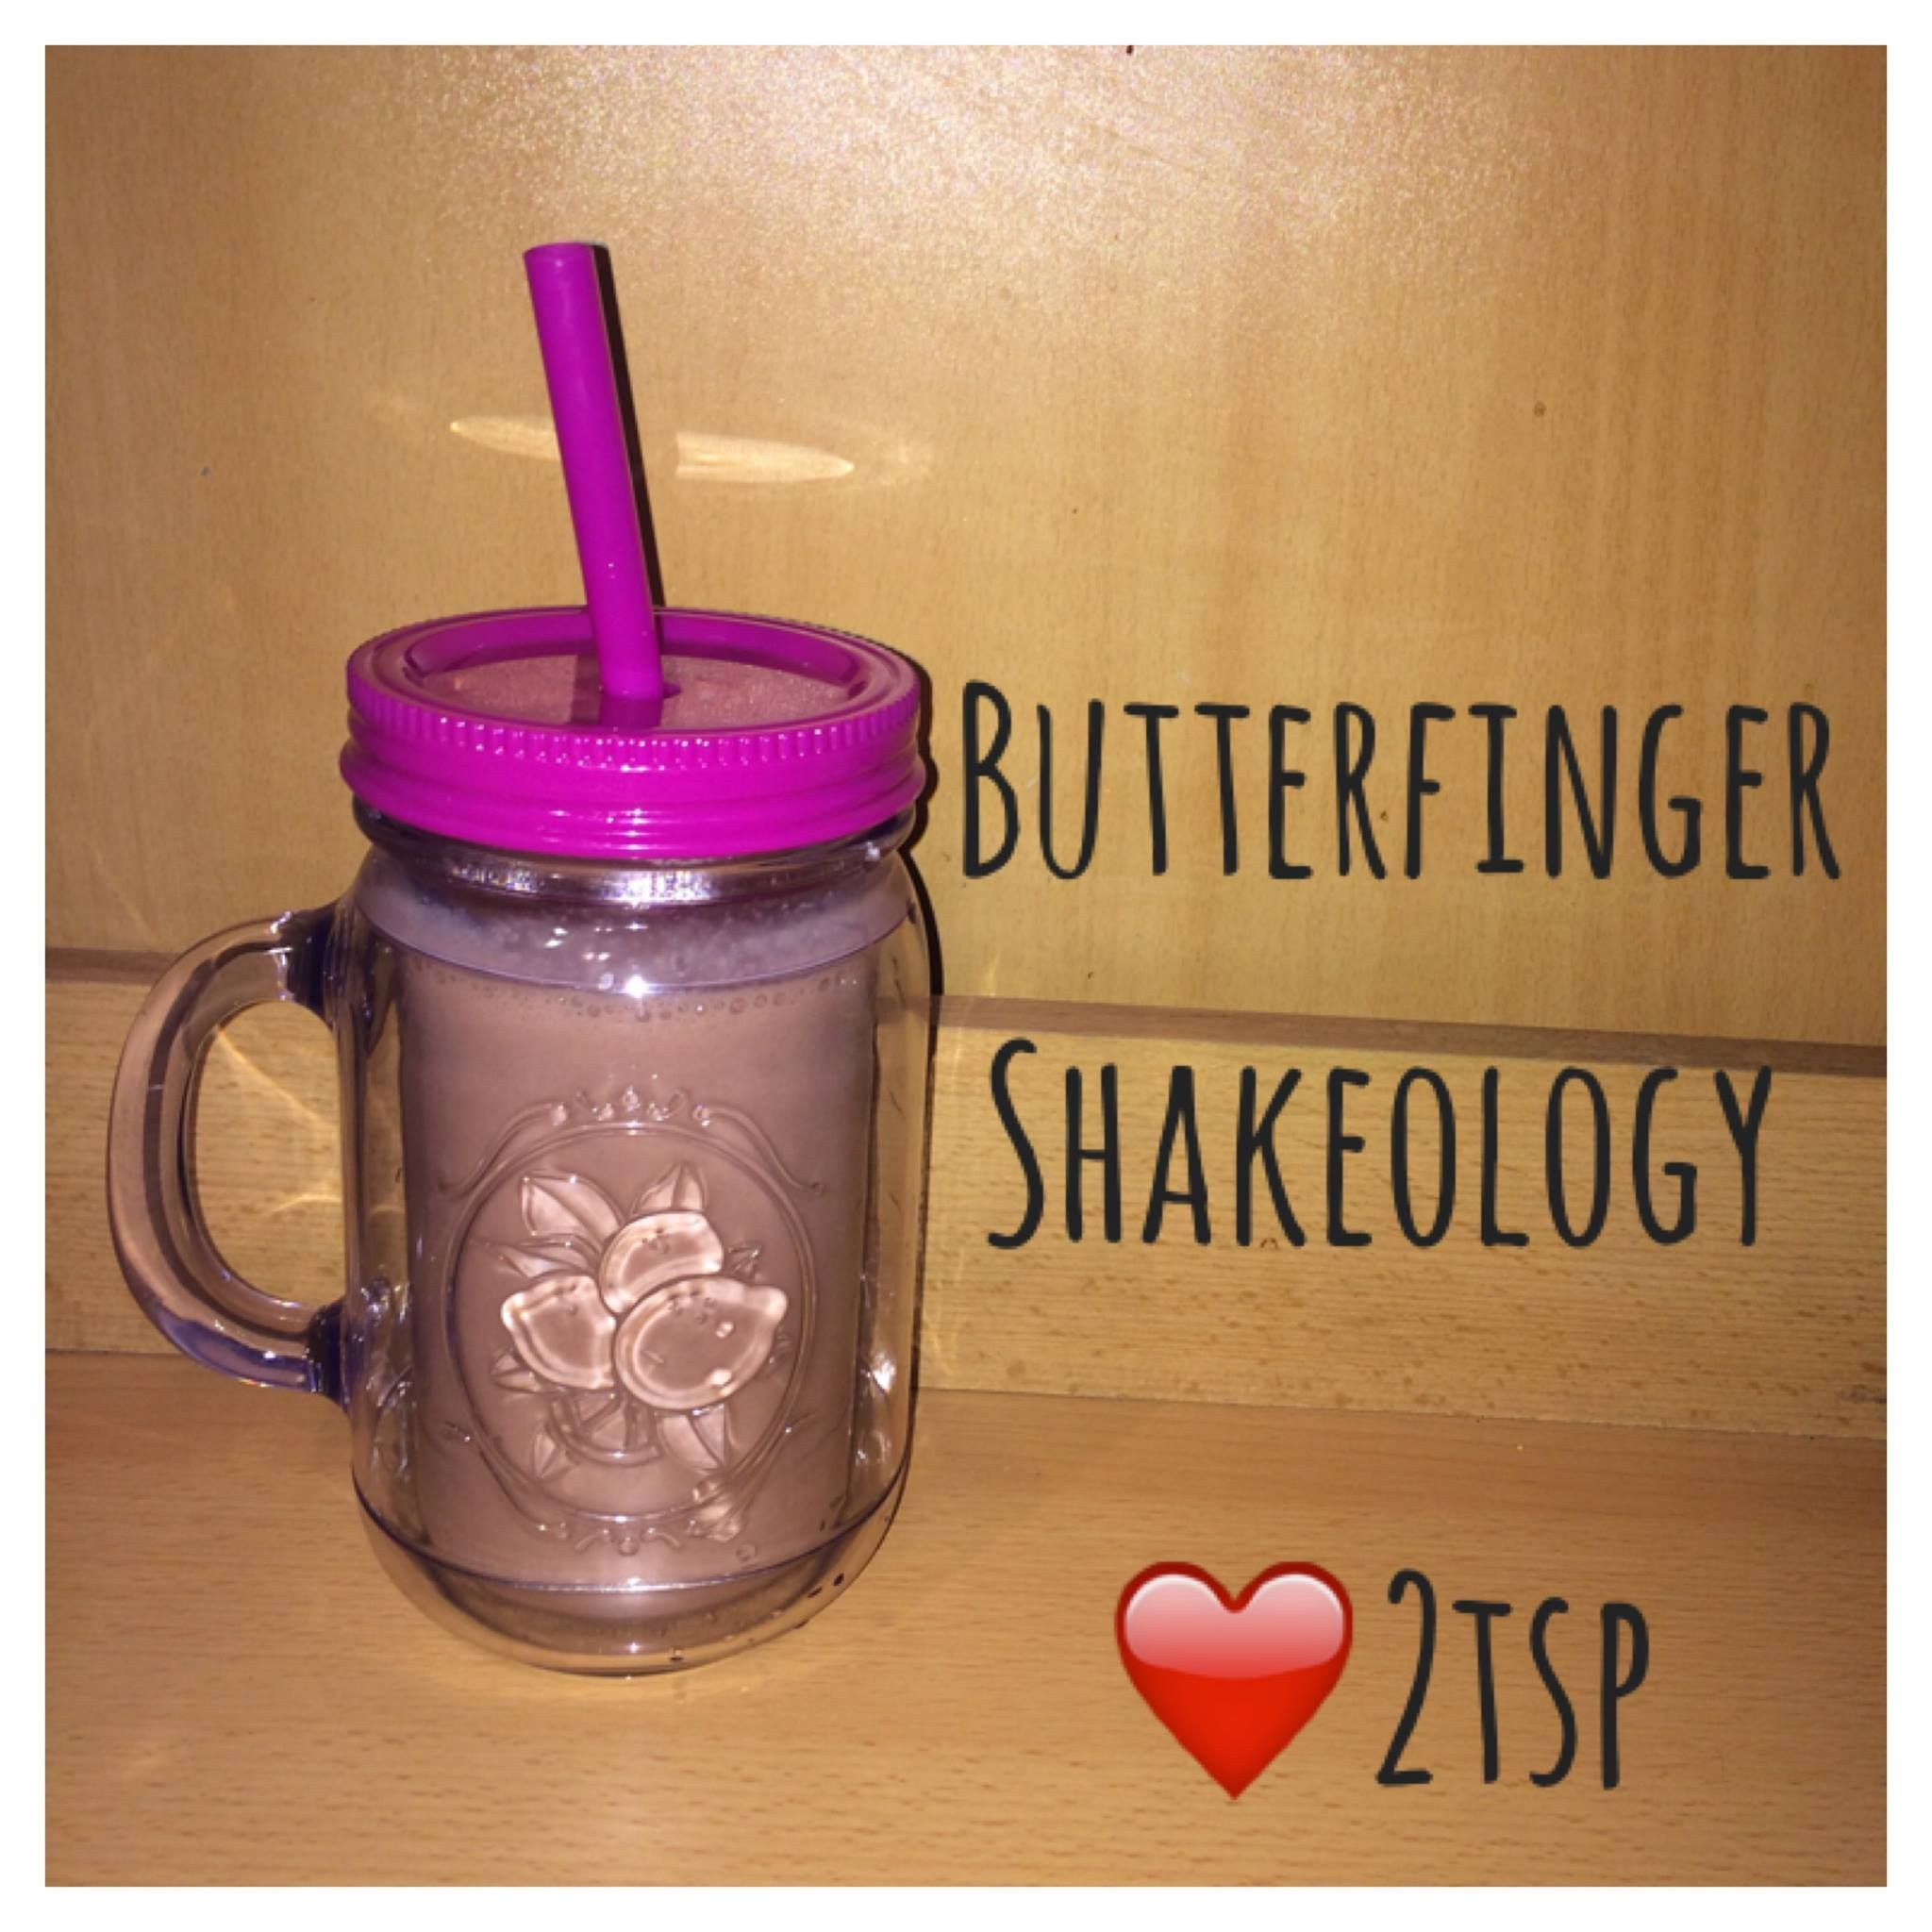 Serves 1 Container Equivalent (per serving): 1 Red, 2 Teaspoons 1 scoop of Chocolate Shakeology 1 cup unsweetened almond milk 2 teaspoons natural peanut butter 1/4 teaspoon butterscotch extract Ice…